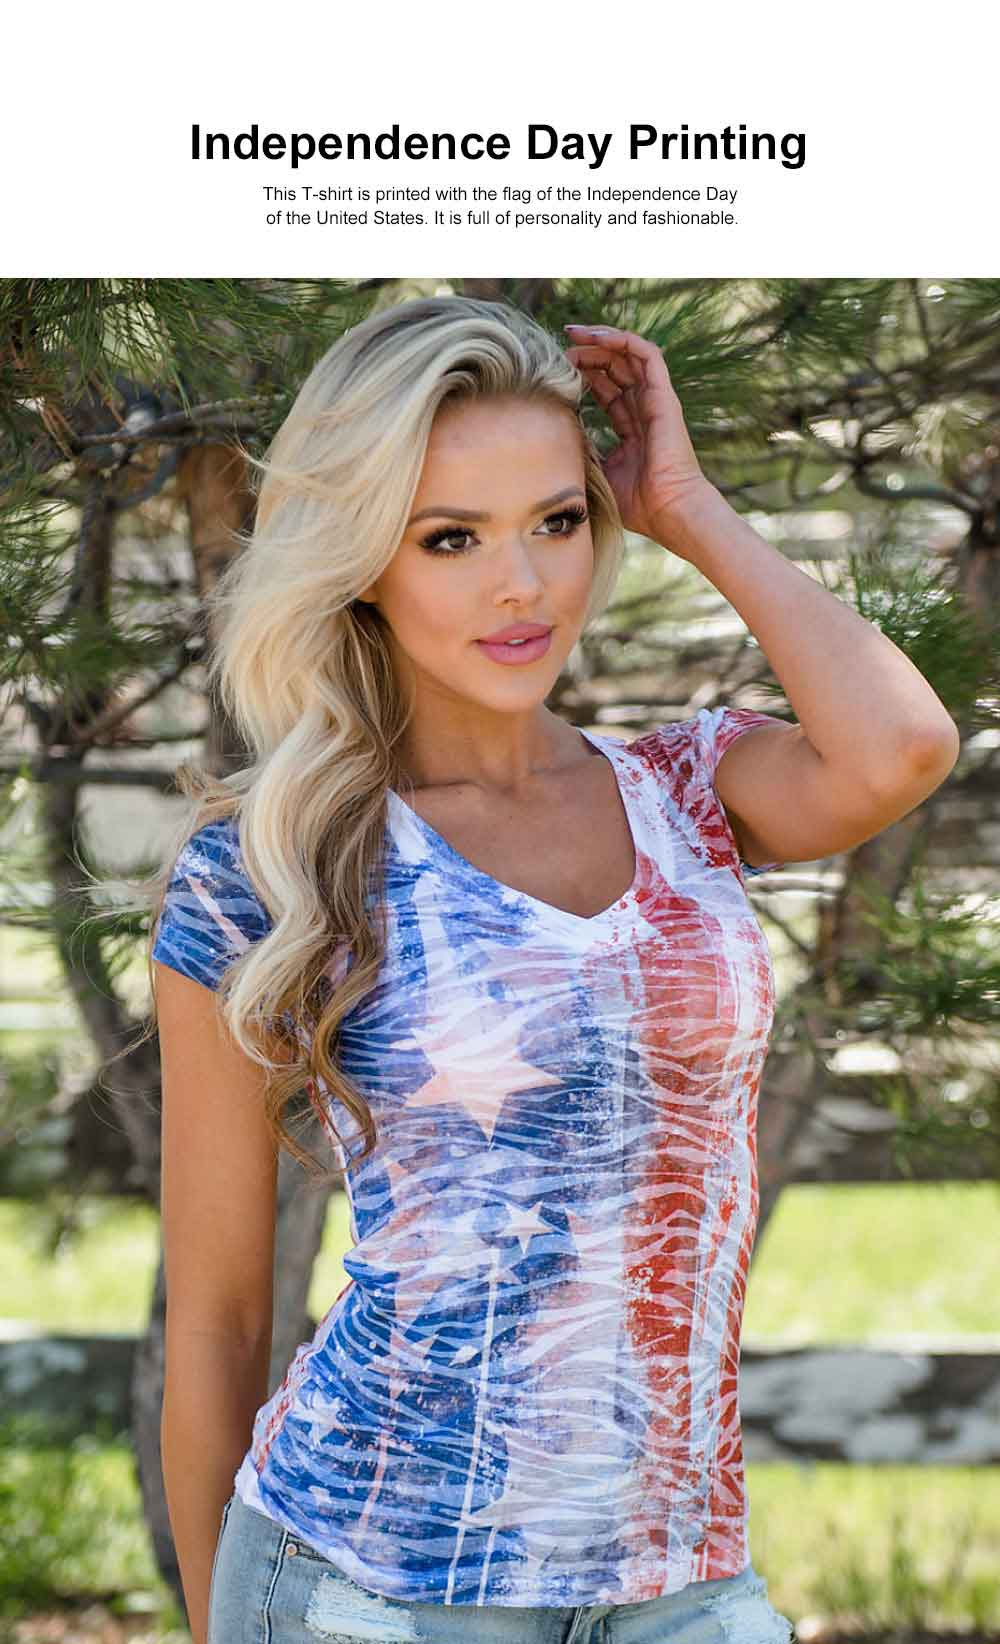 Summer Fashion V-neck Short Sleeves 2019 Women T-shirt Europe America Style Independence Day Flag Printing 1